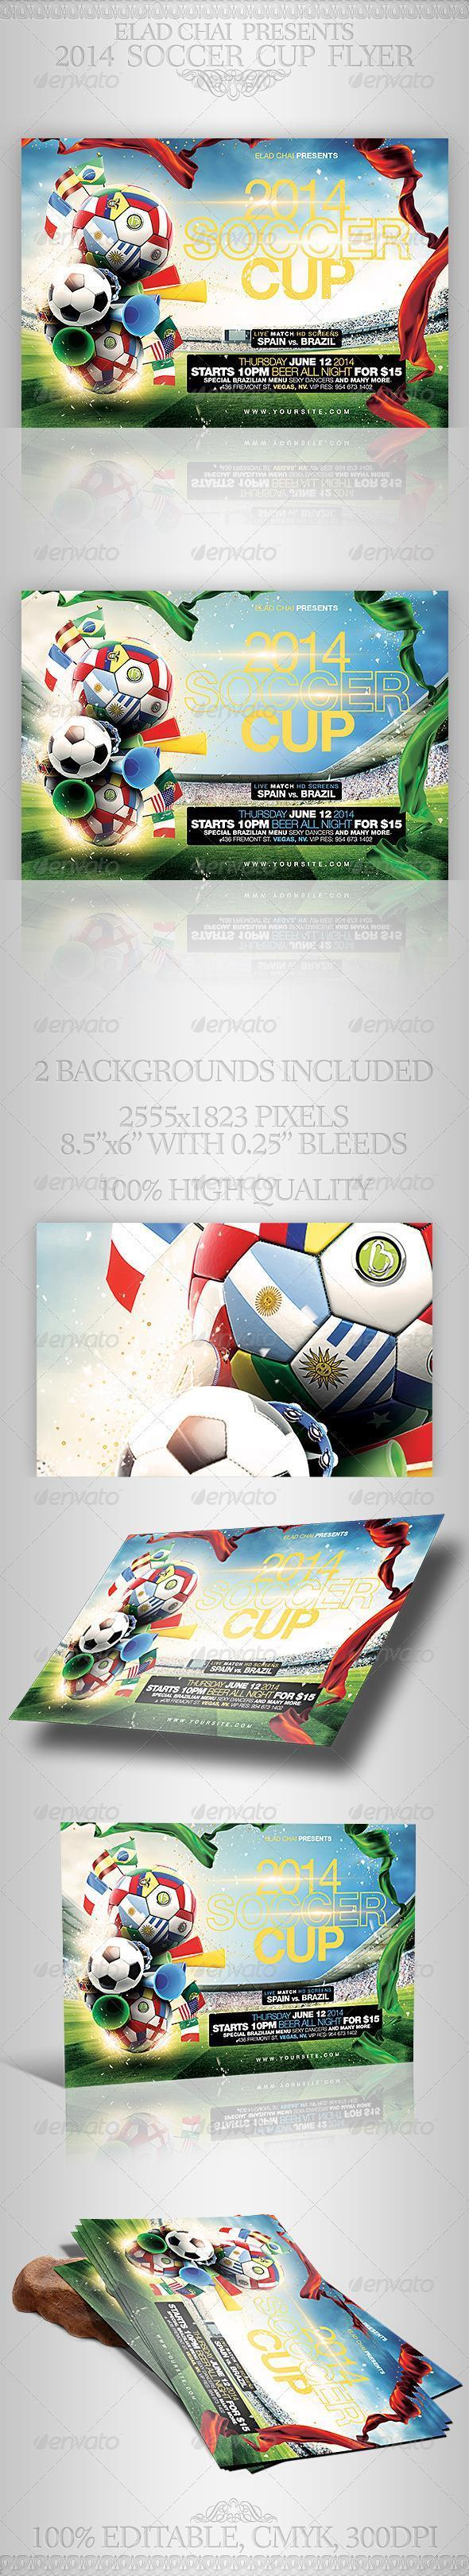 Clean Design Sport Event Flyer World Cup 2014